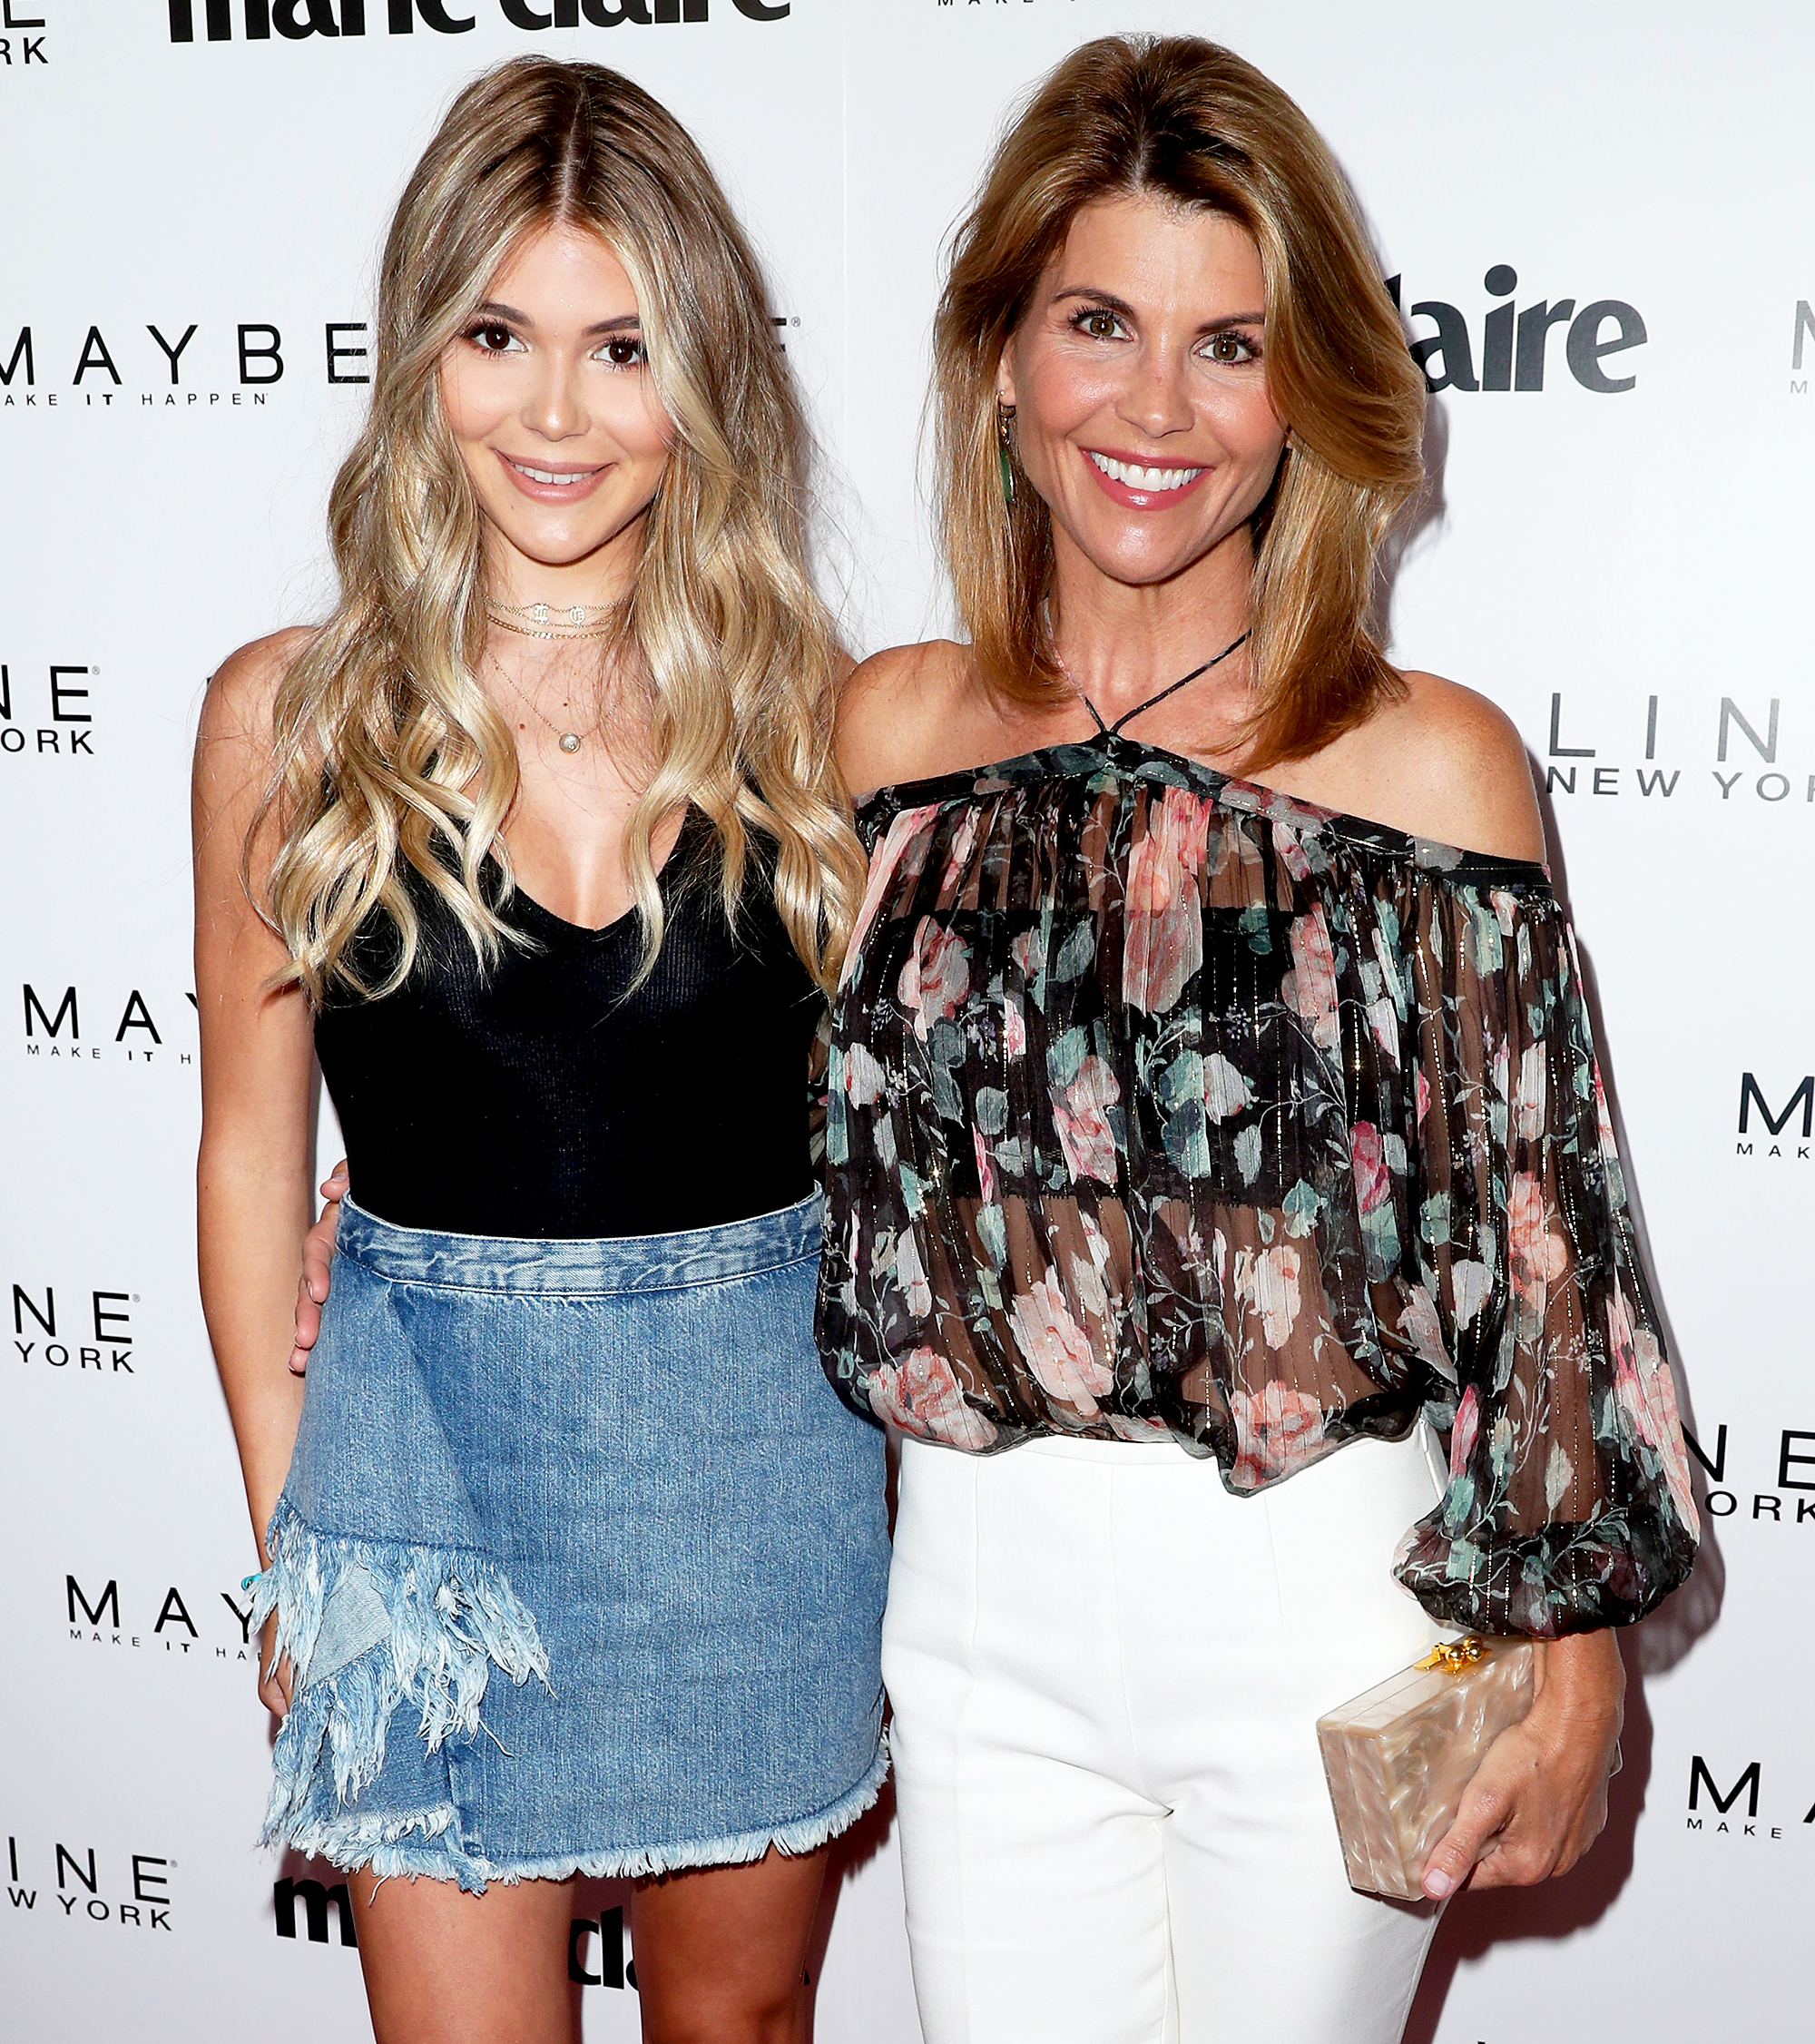 Lori Loughlin and Olivia Jade